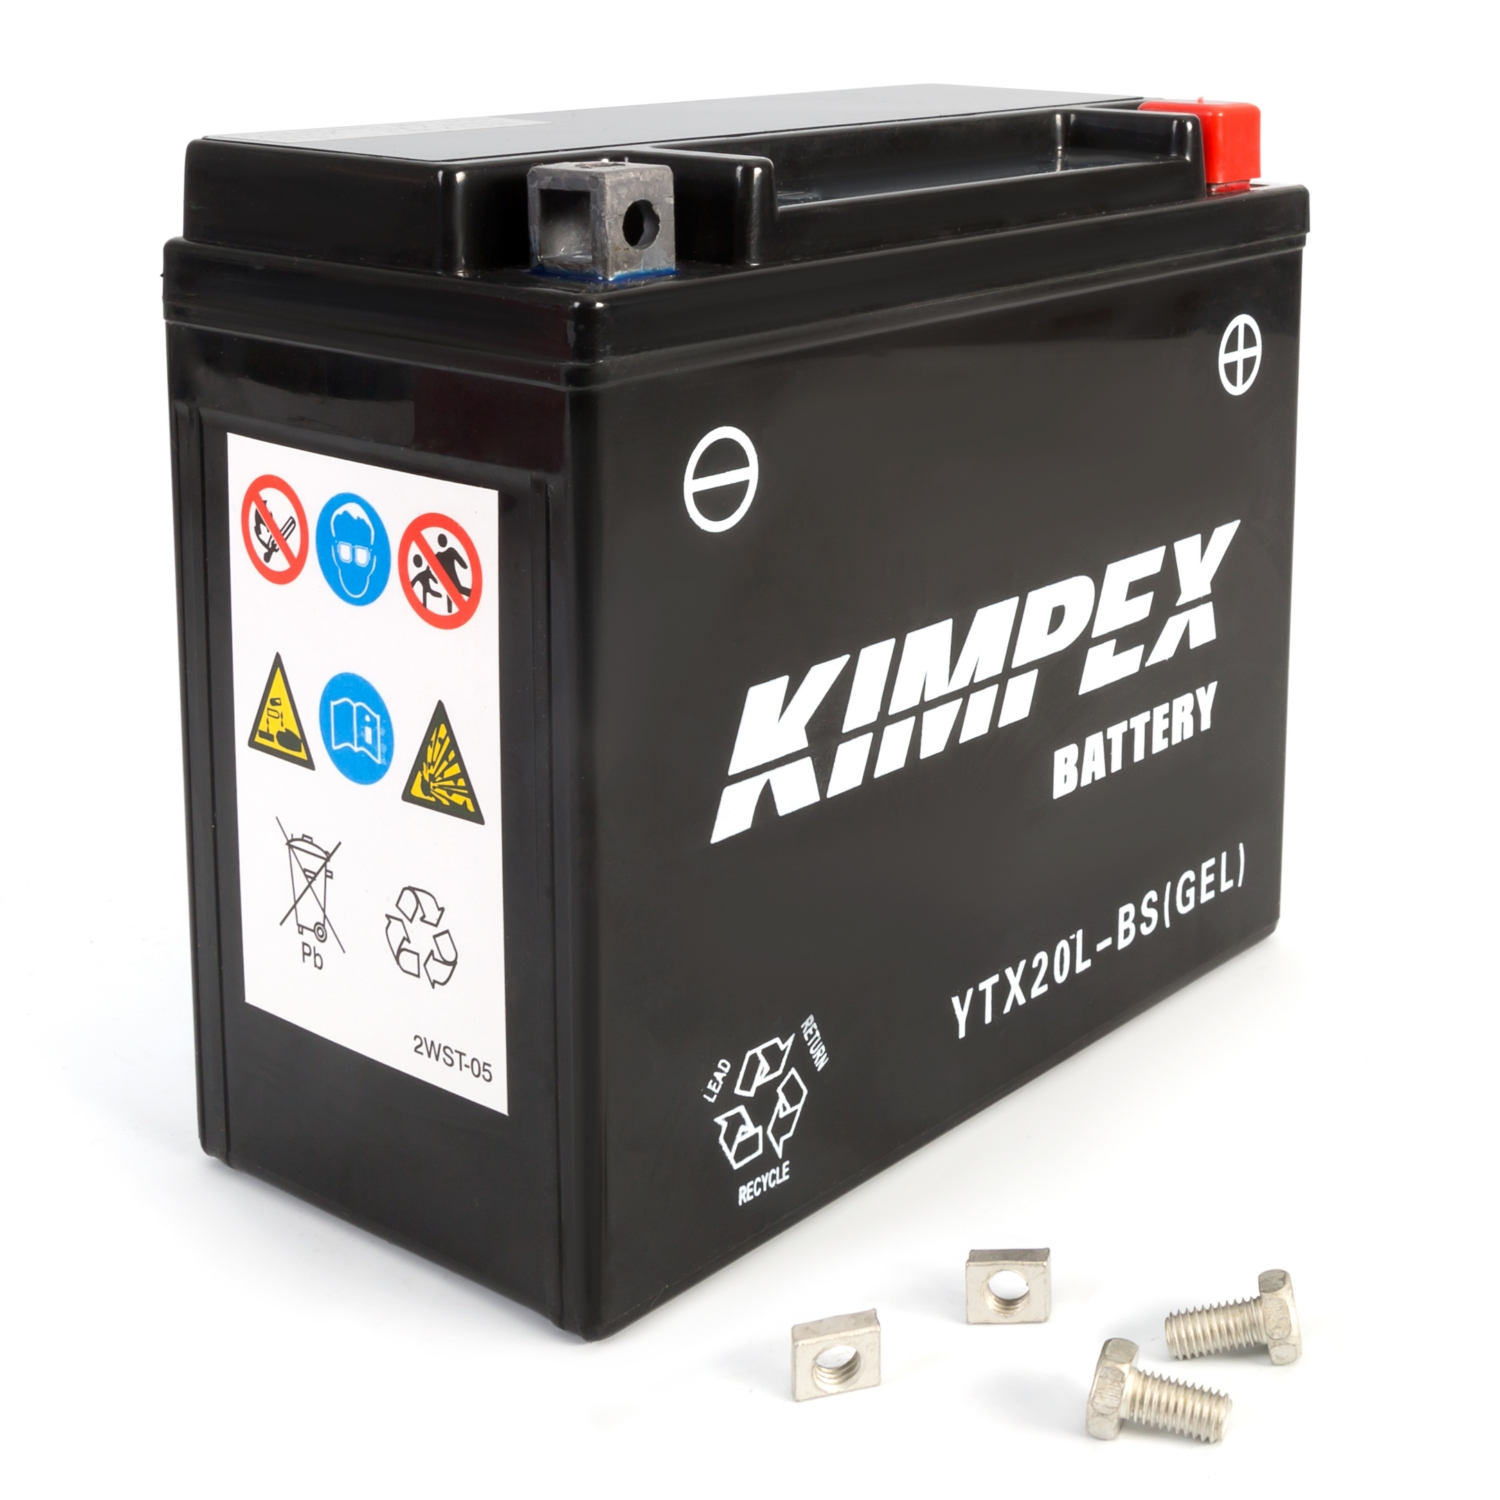 Kimpex Factory Activated Maintenance Free Gel Battery YTX20(L)-BS(GEL)-PP   #913127